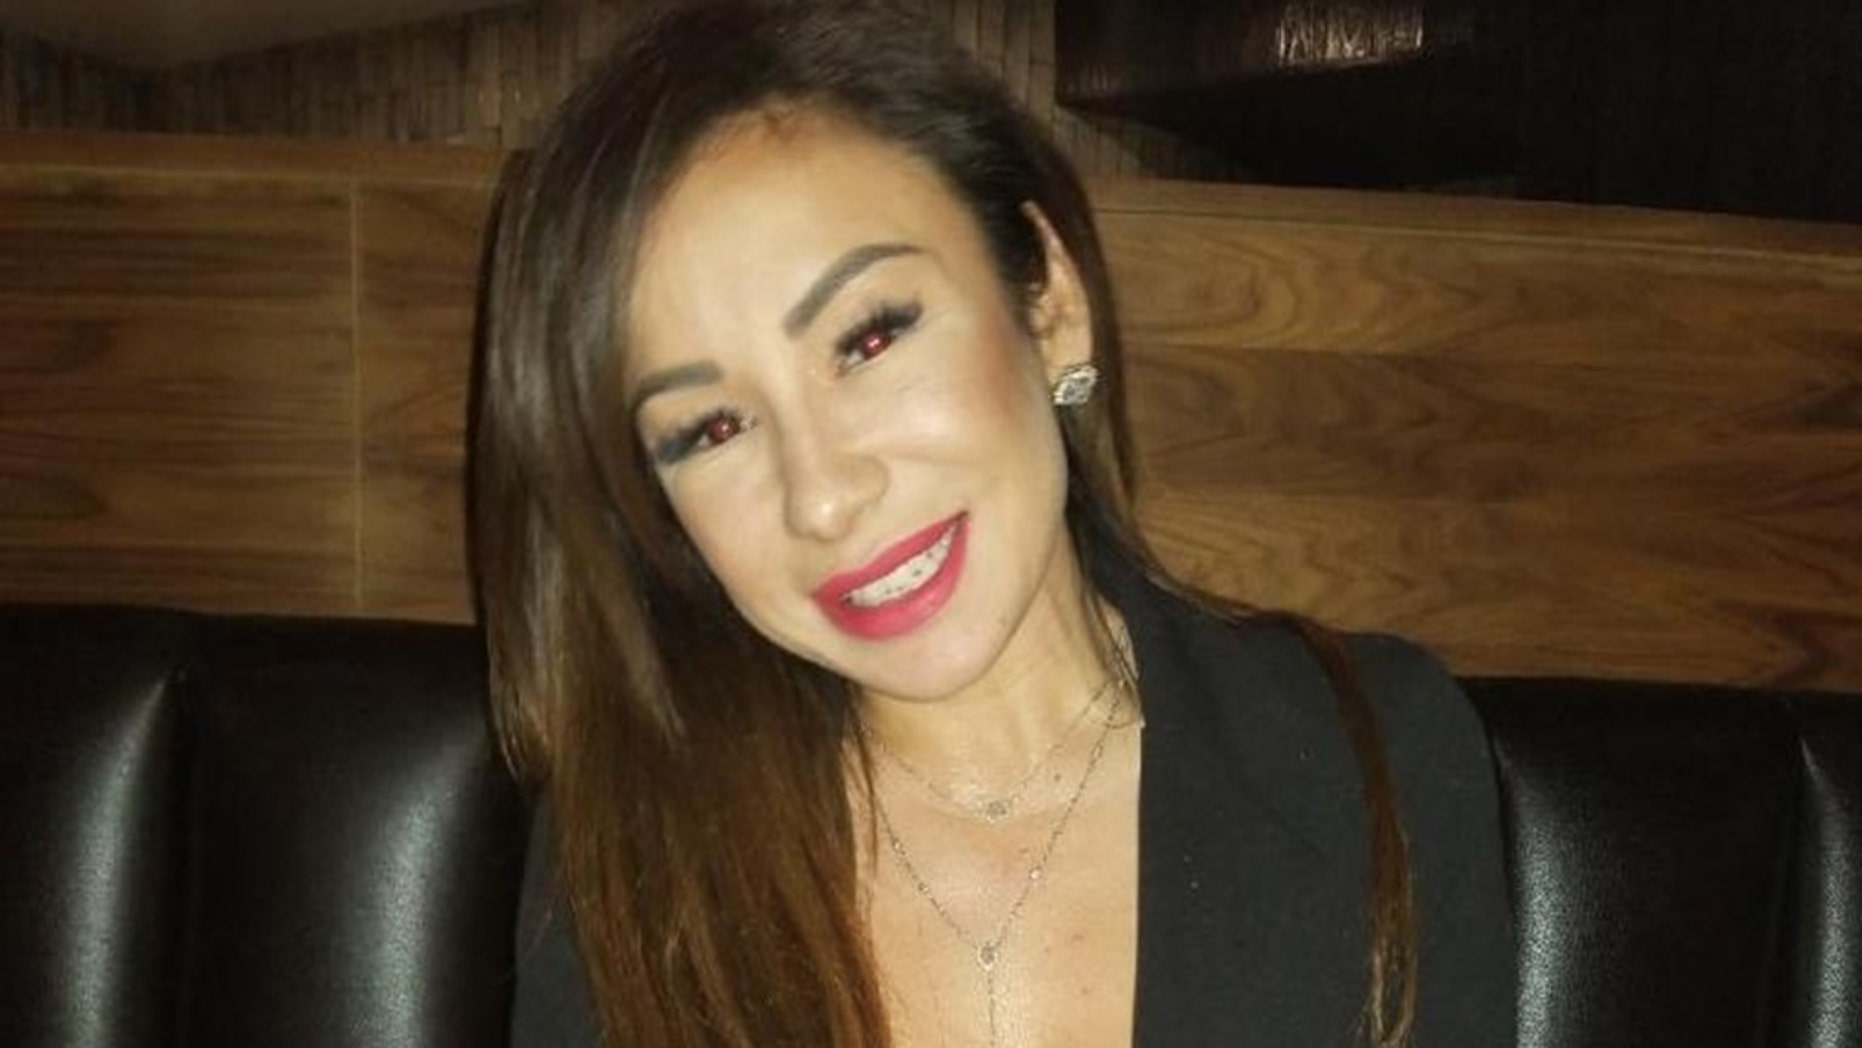 Dallas Woman Left in Coma After Botched Nose Job Procedure in Mexico